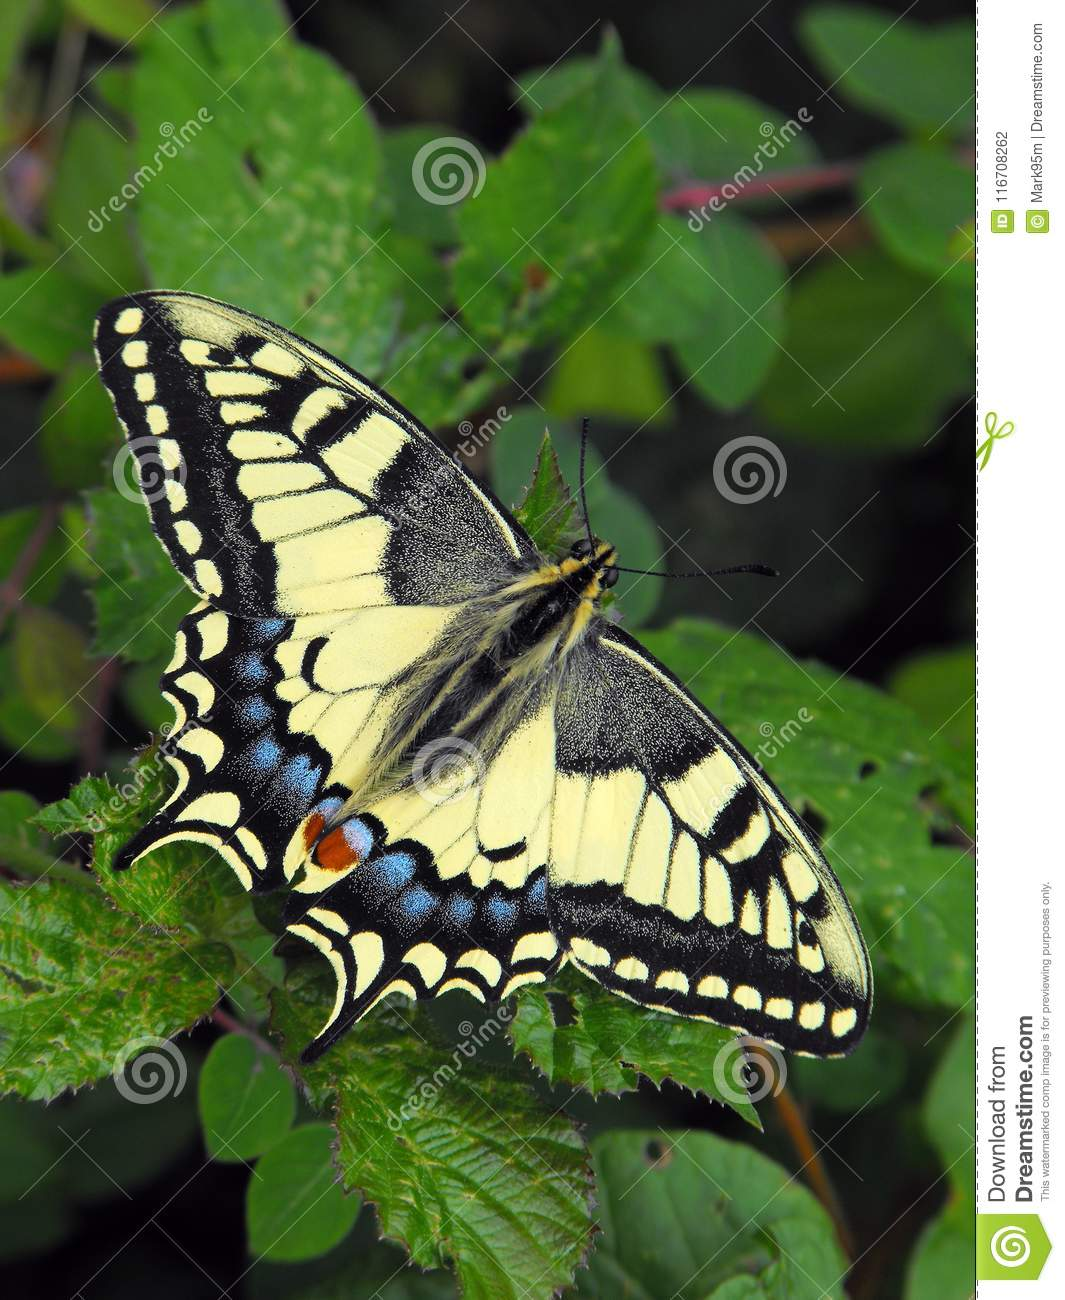 Borboleta de Swallowtail do europeu